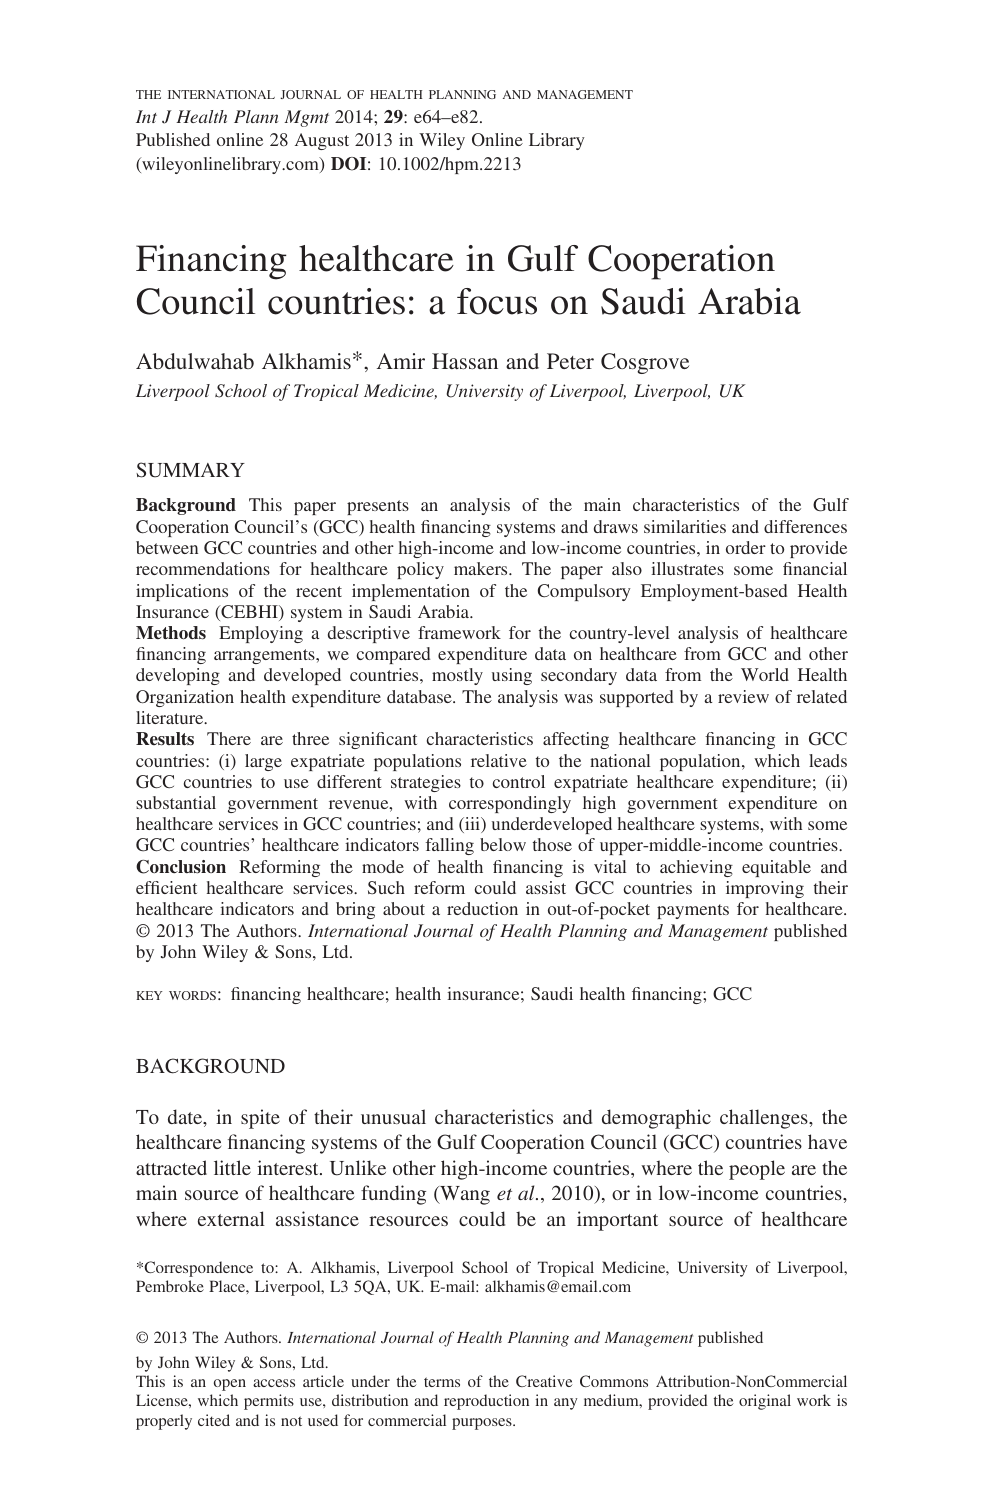 Financing healthcare in Gulf Cooperation Council countries